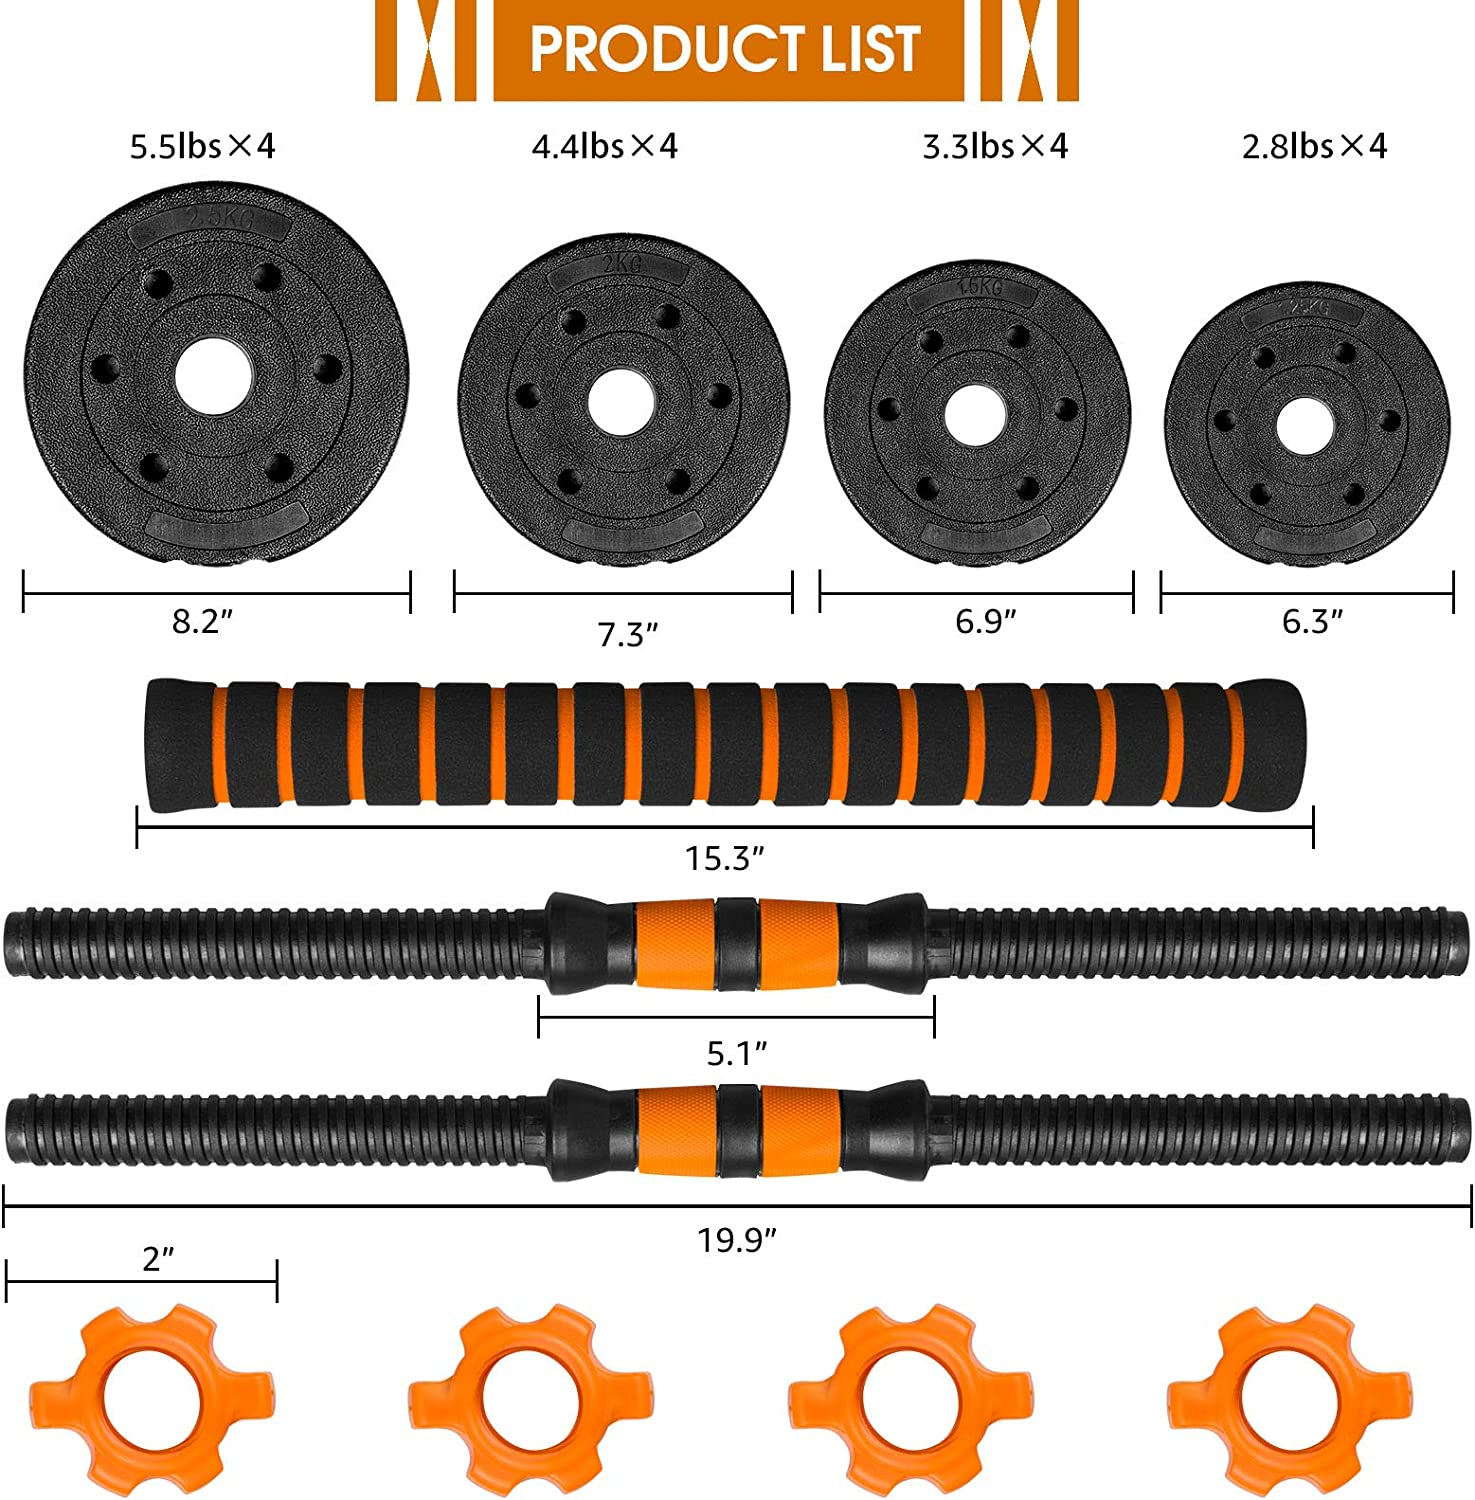 5//15//20//33//66 lbs 2 in 1 Weights Dumbbells Non-Slip Neoprene Hand with Connecting Rod for Adults Women Men Fitness,Home Gym Training Equipment BOSWELL Adjustable Free Weights Barbell Dumbbells Set